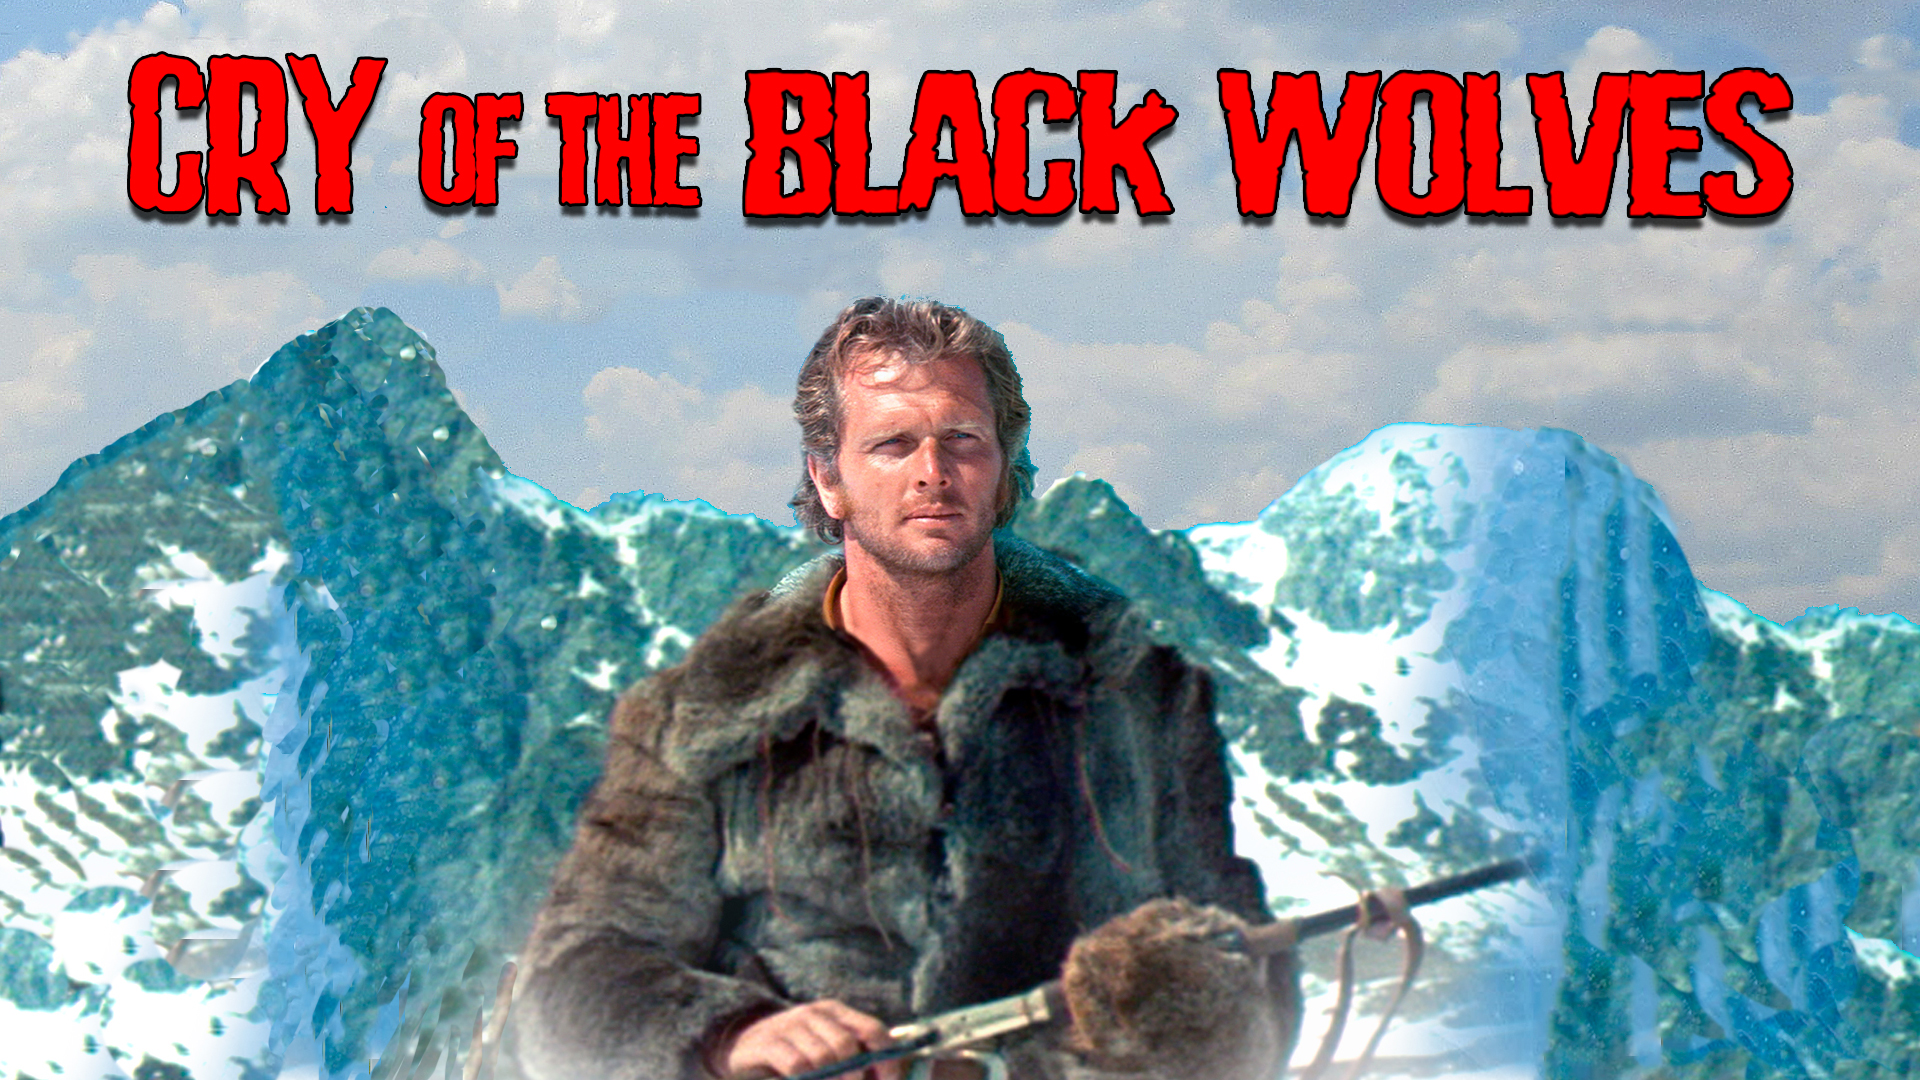 Cry of the Black Wolves